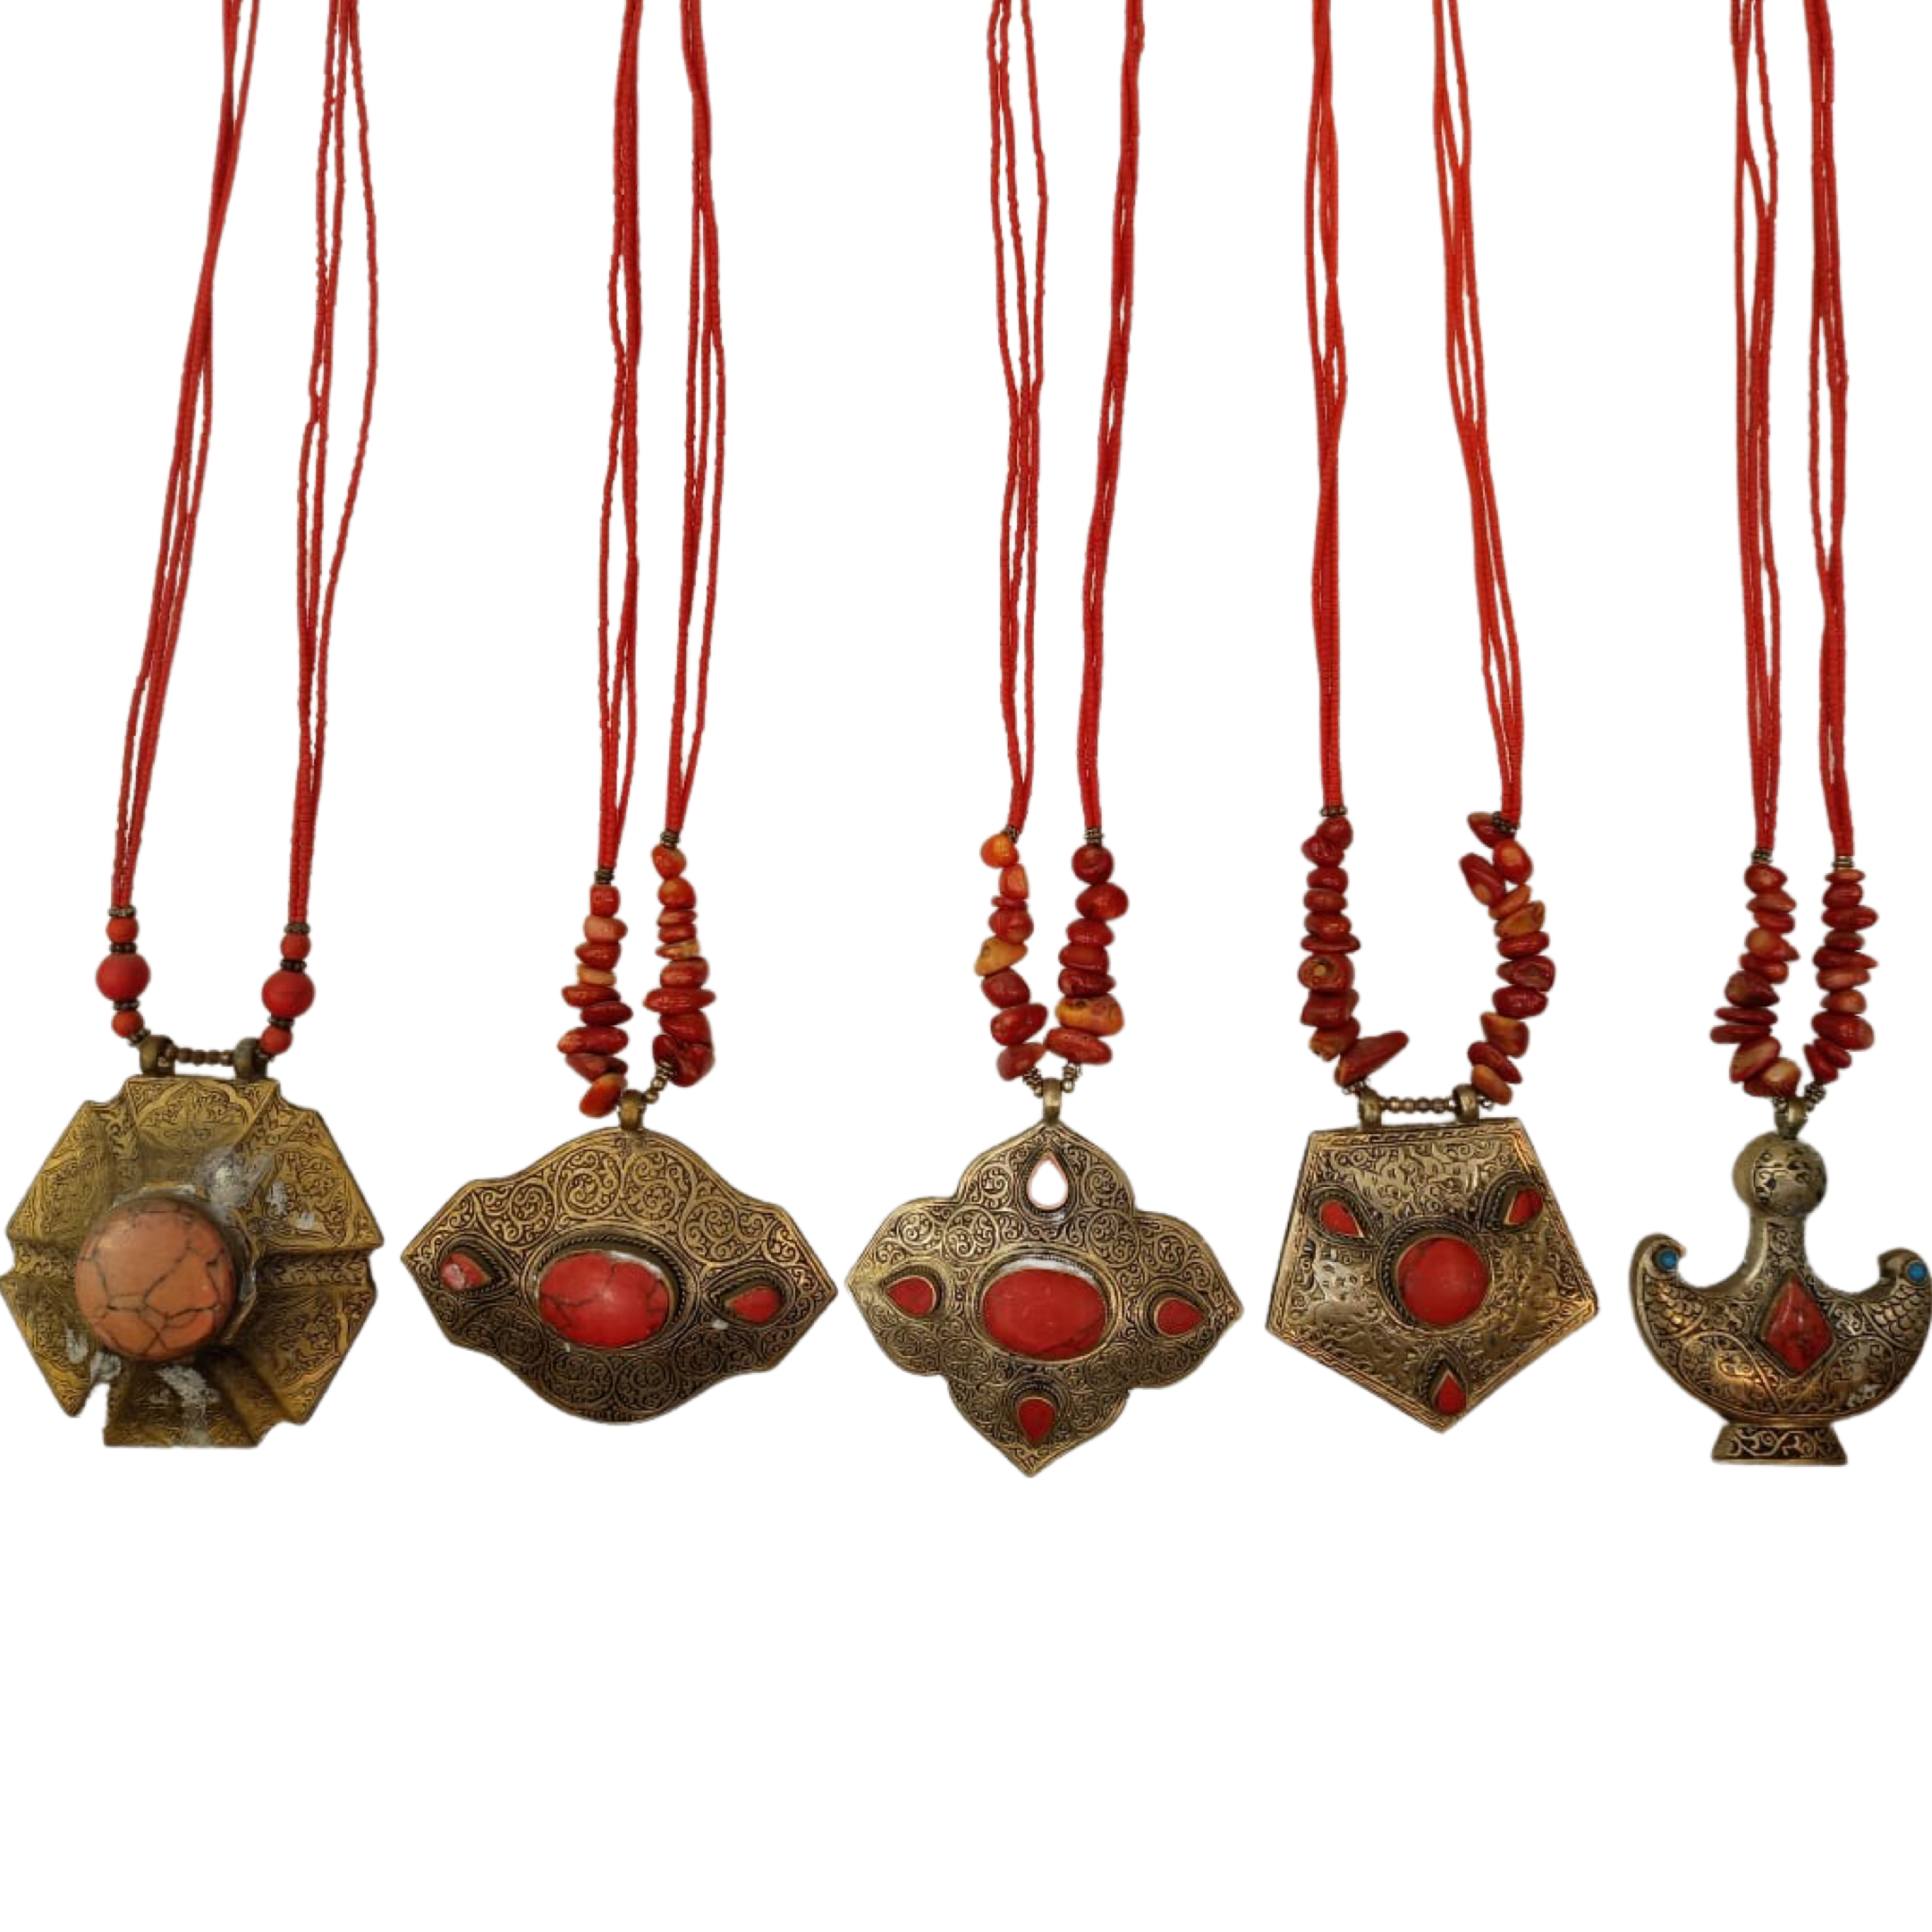 Handmade Stone Necklace, Pack of 4